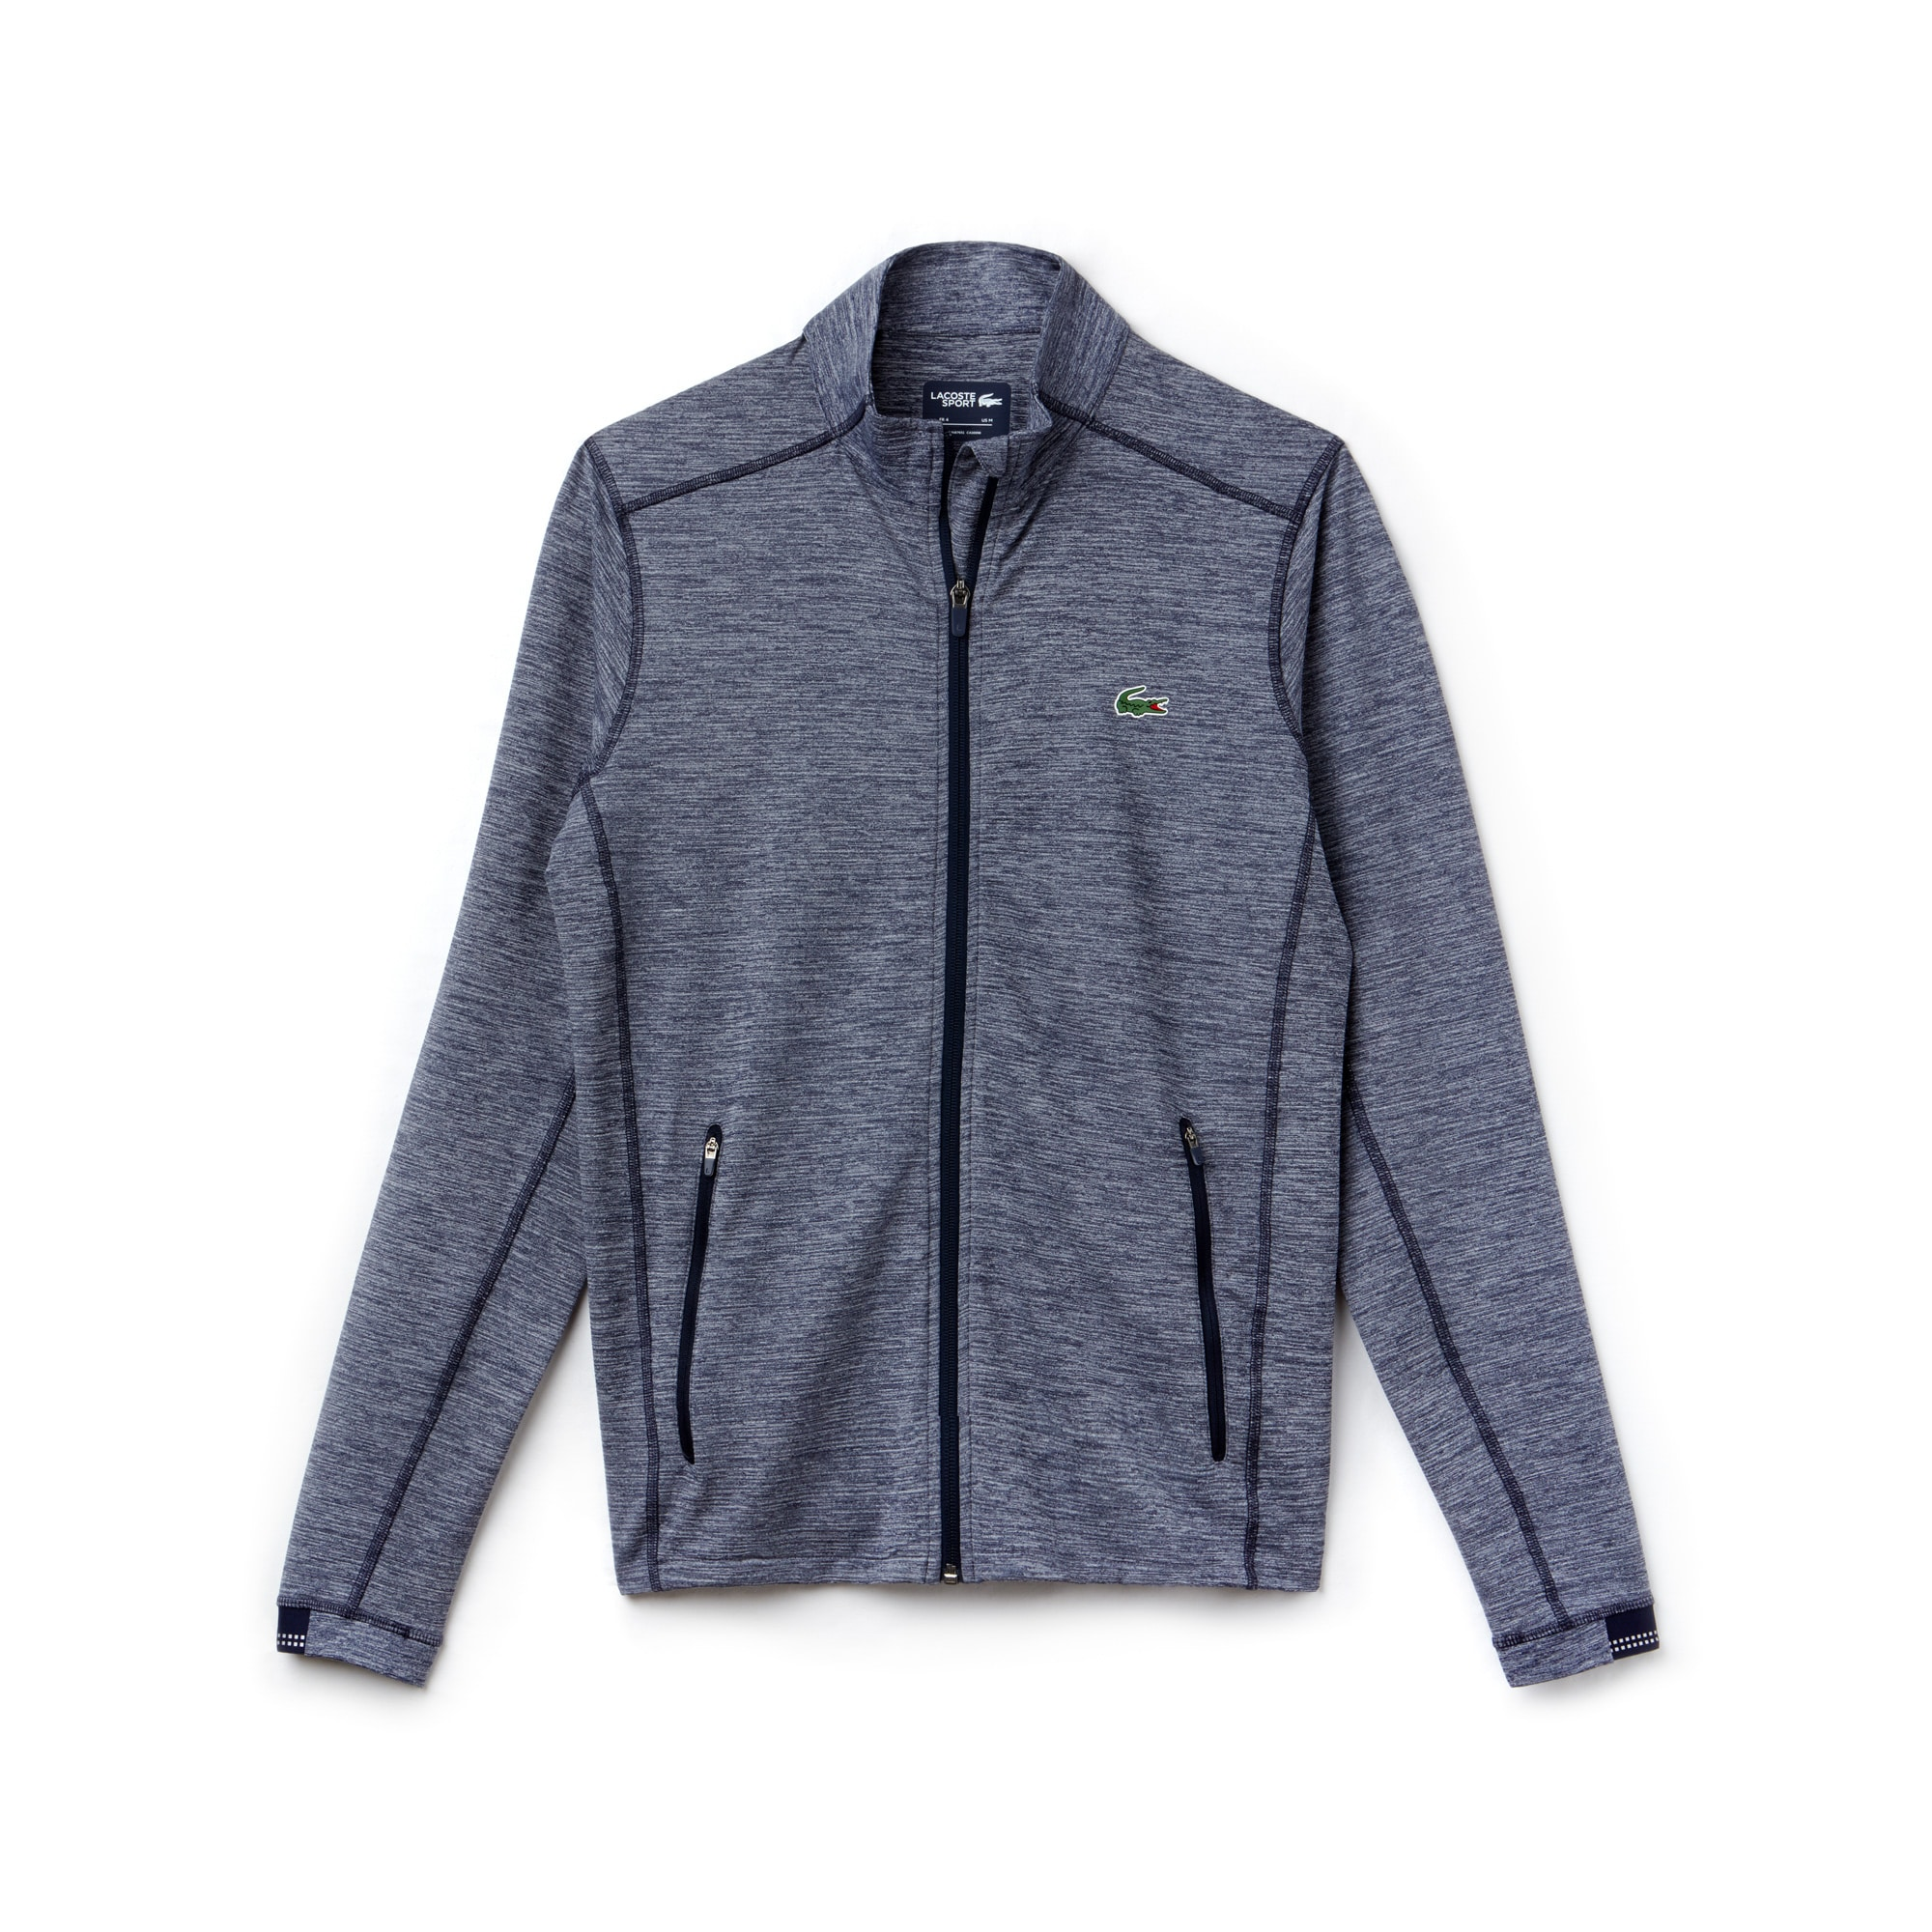 라코스테 Lacoste Mens SPORT Midlayer Golf Sweatshirt,aquatic/navy blue